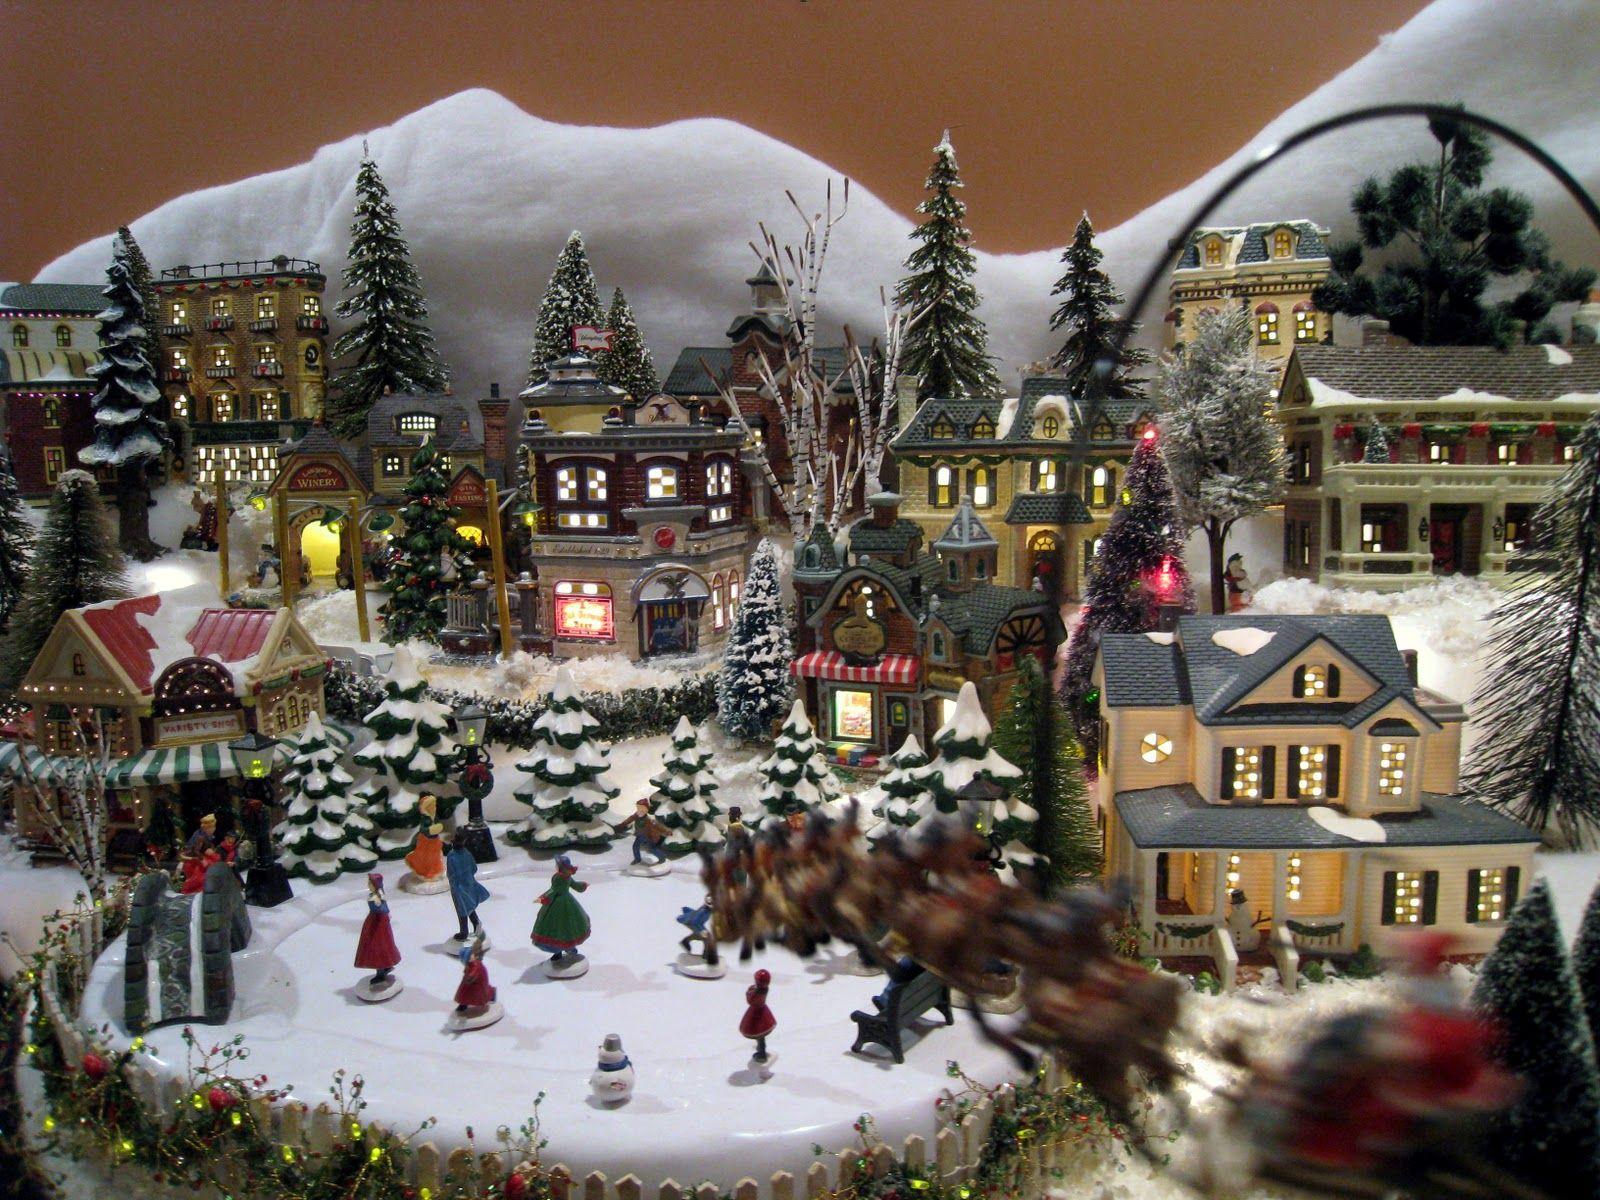 christmasvillageideas can you believe your eyes its santa and his reindeer flying in from